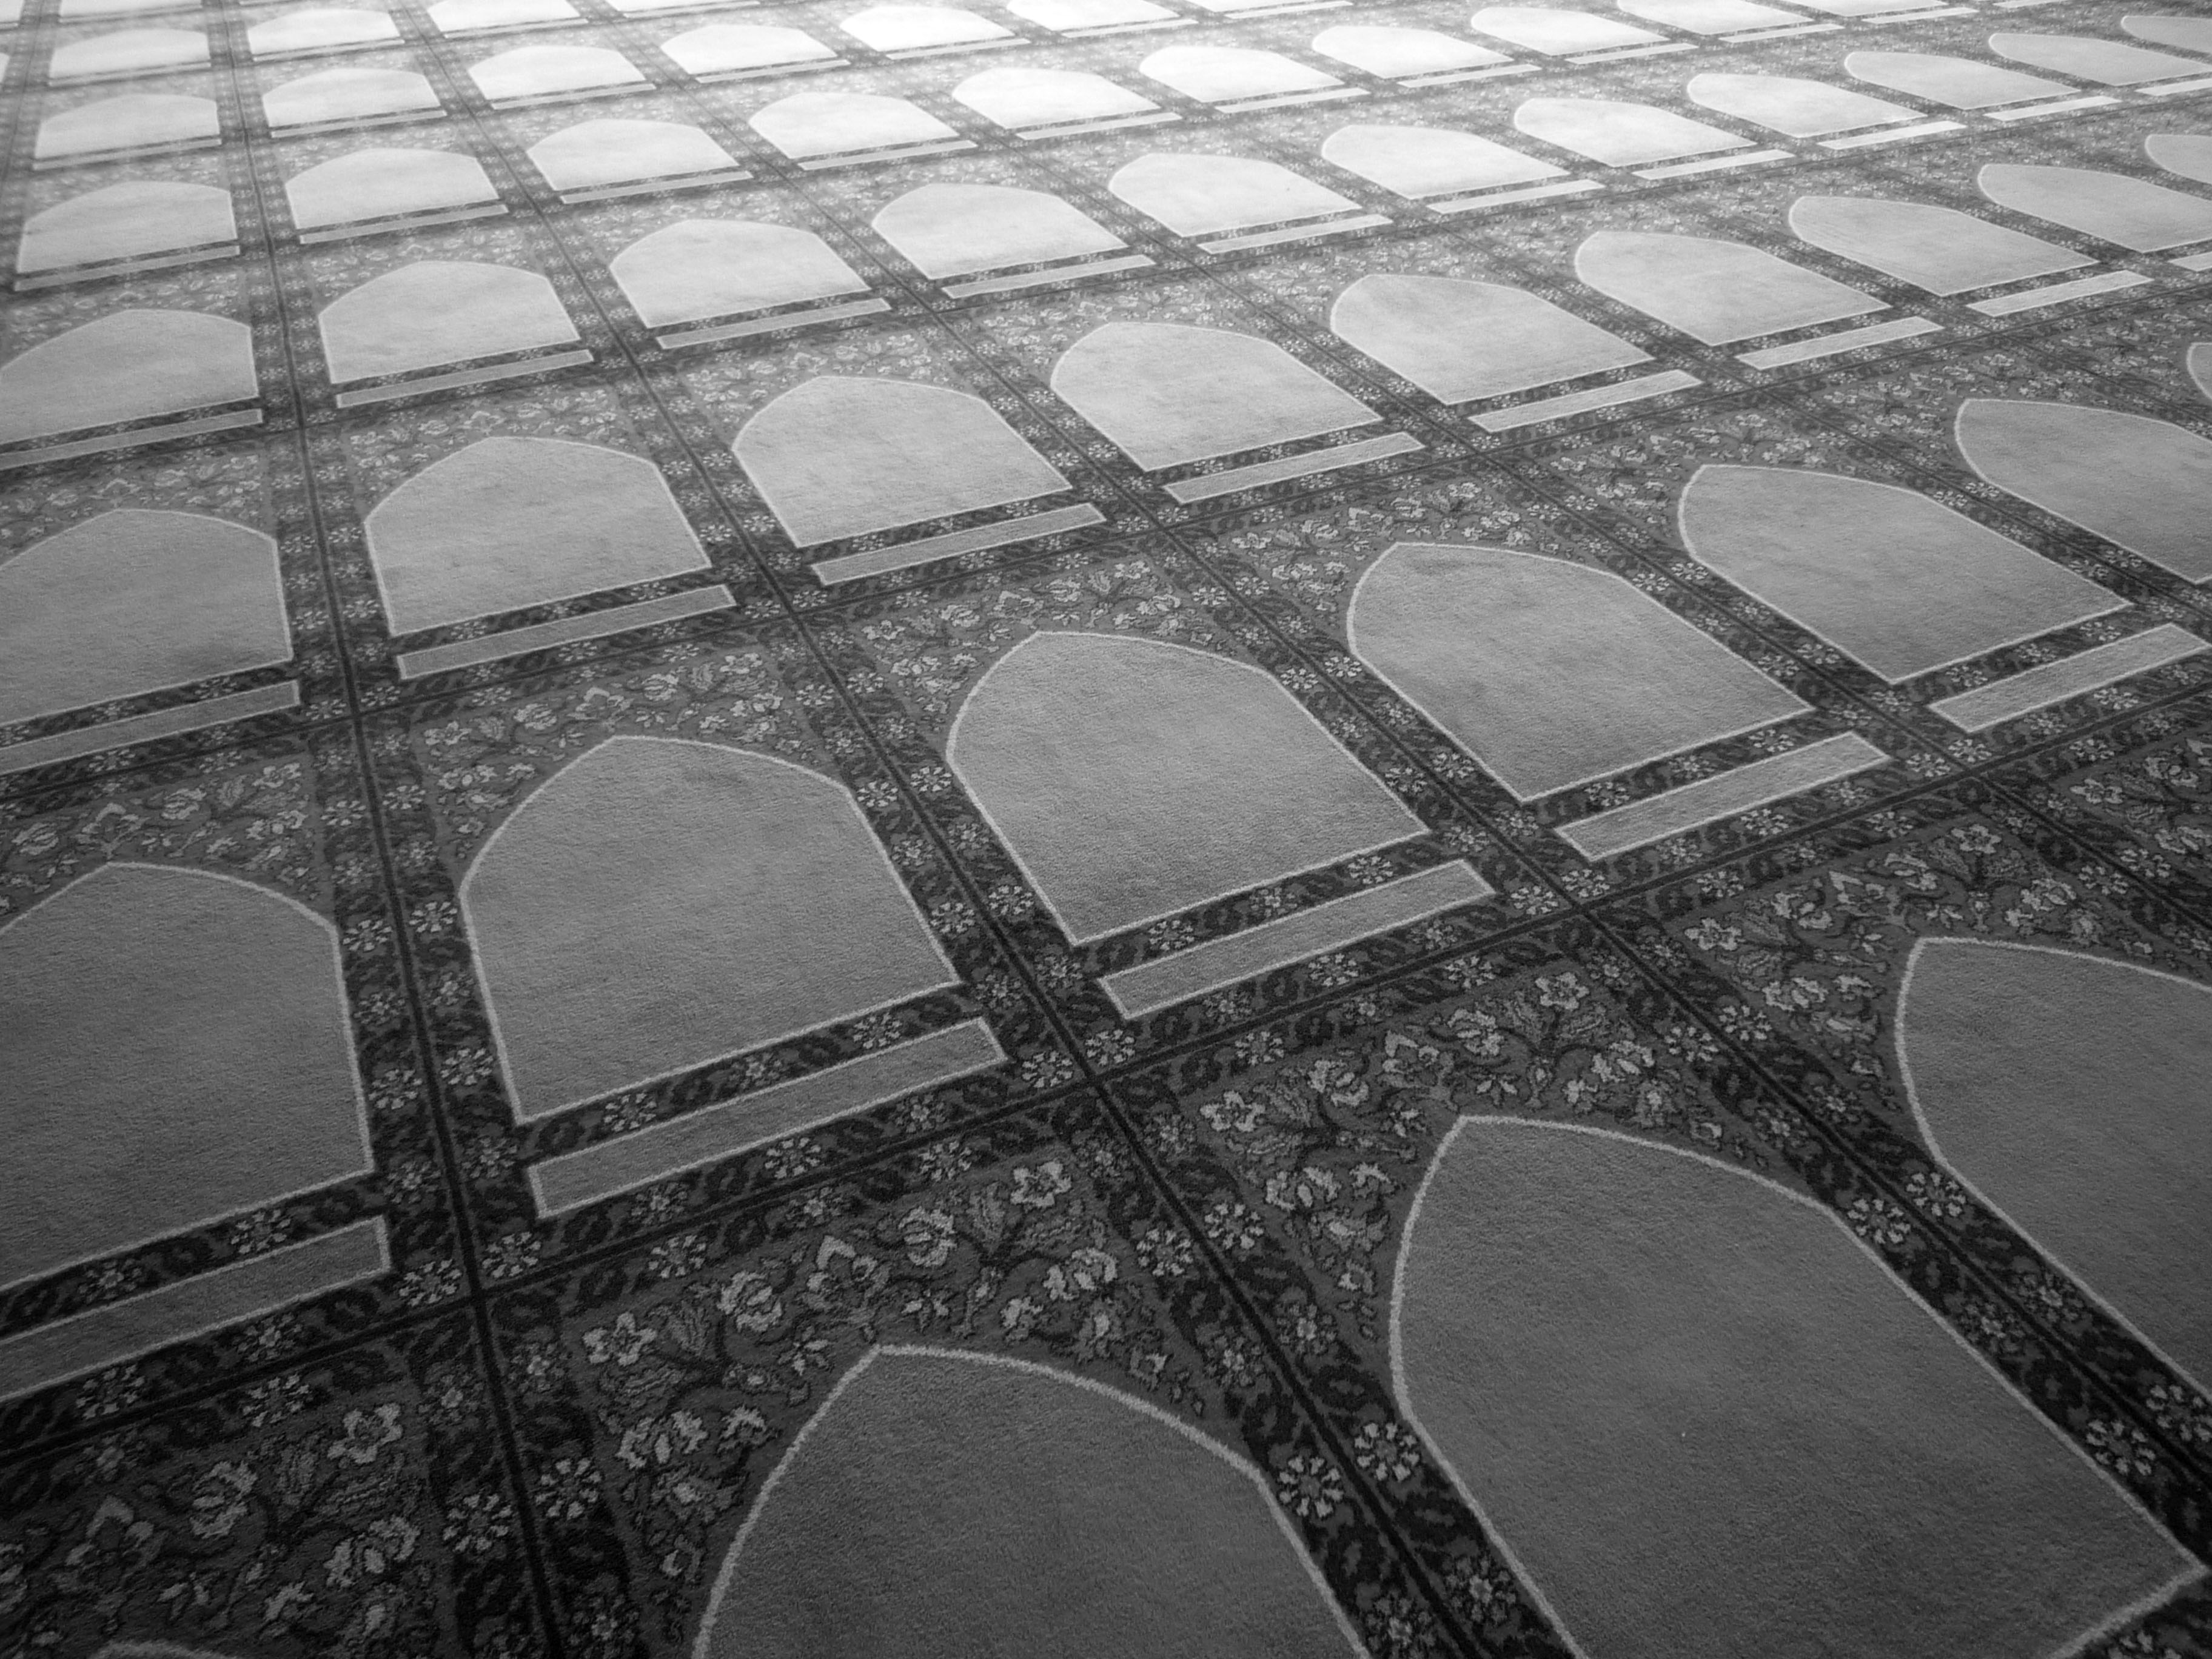 Black Design Wallpaper Islamic Patterns How To Become An Architect